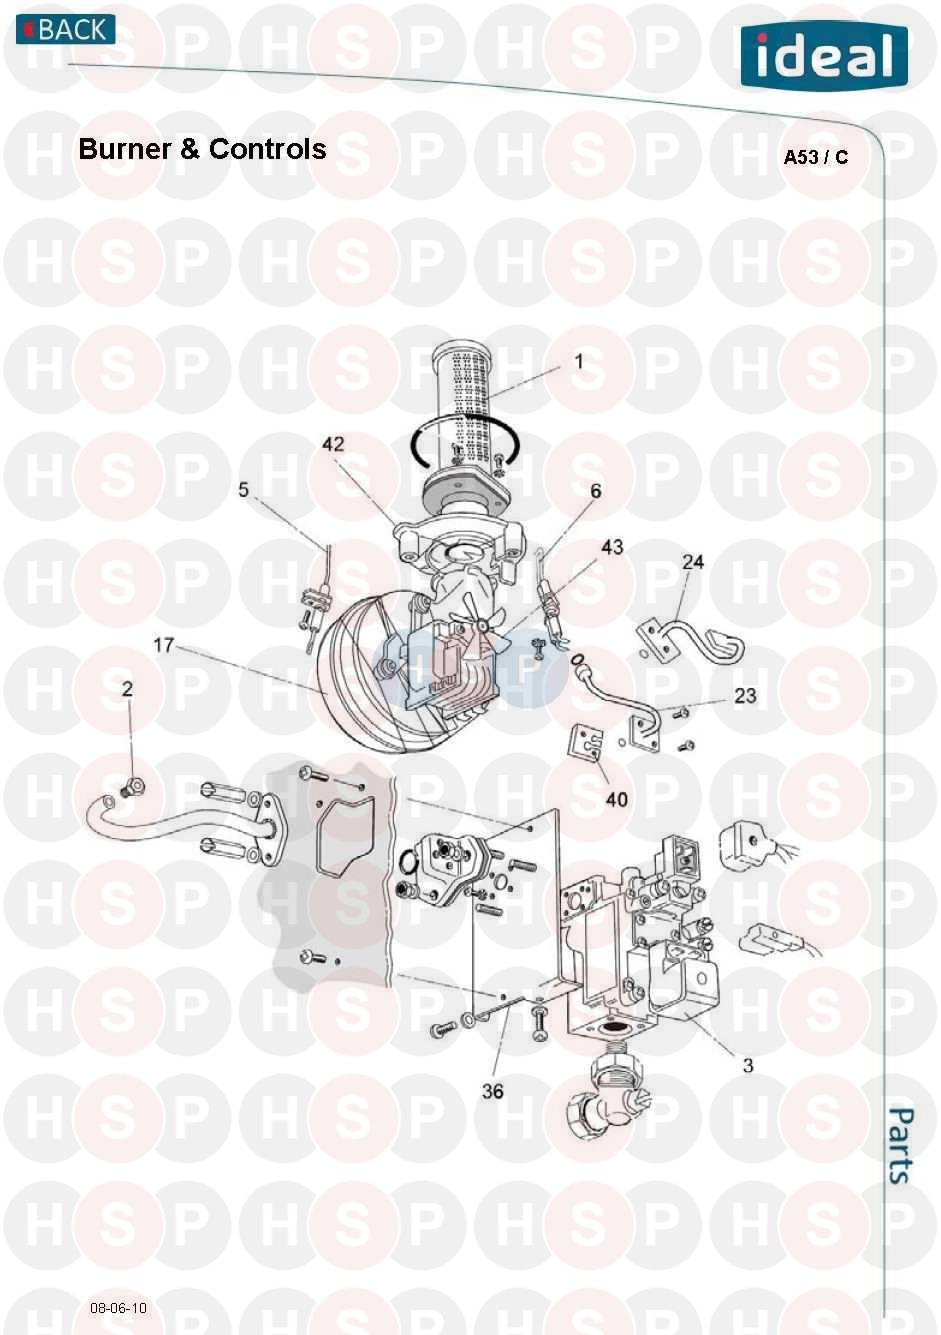 ideal minimiser 30ff  burner  u0026 controls  diagram